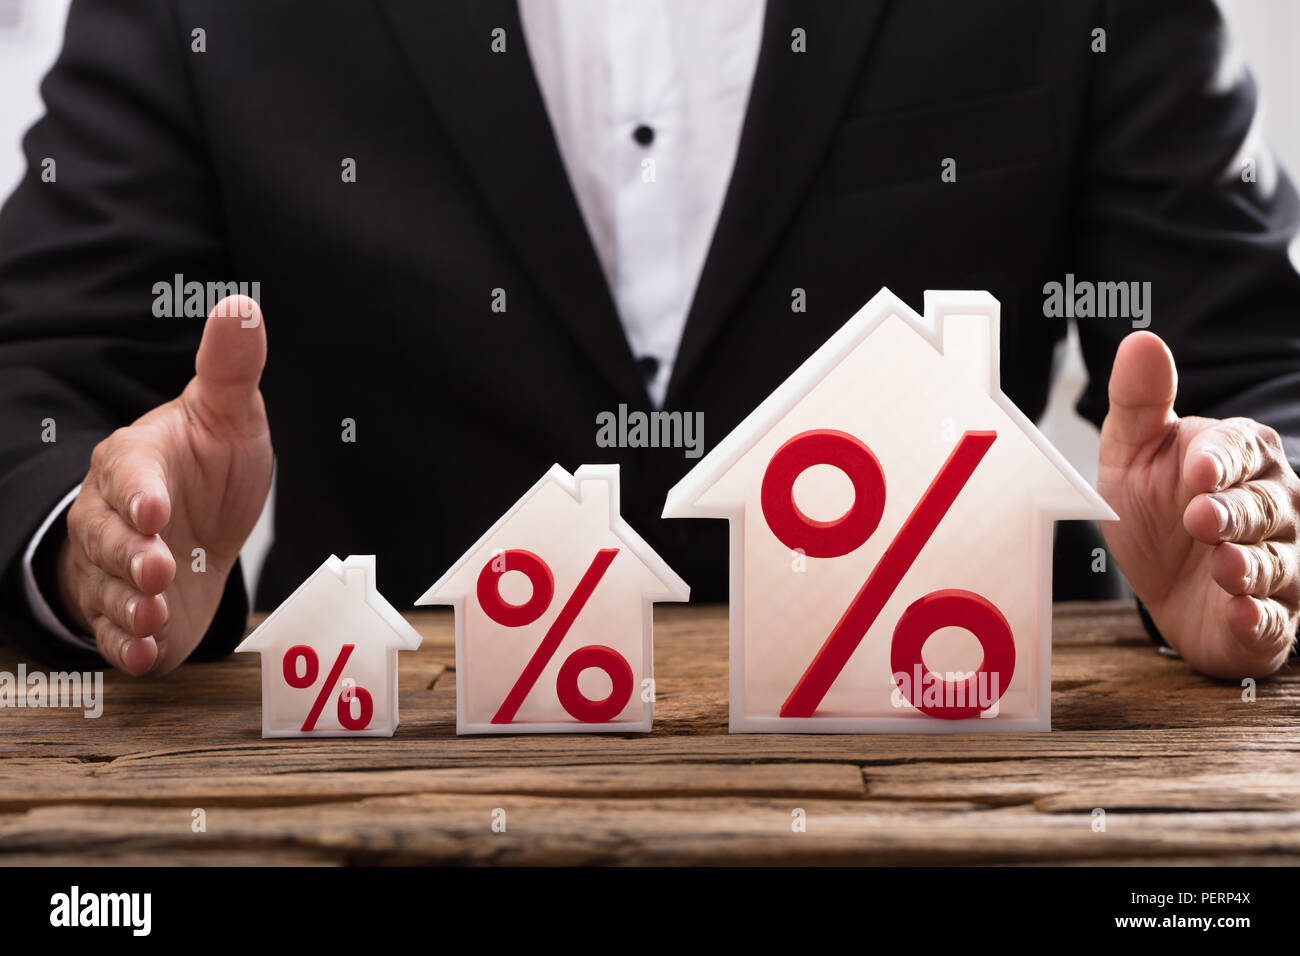 Close-up of a businessperson's hand protecting increasing house models with red percentage symbols - Stock Image